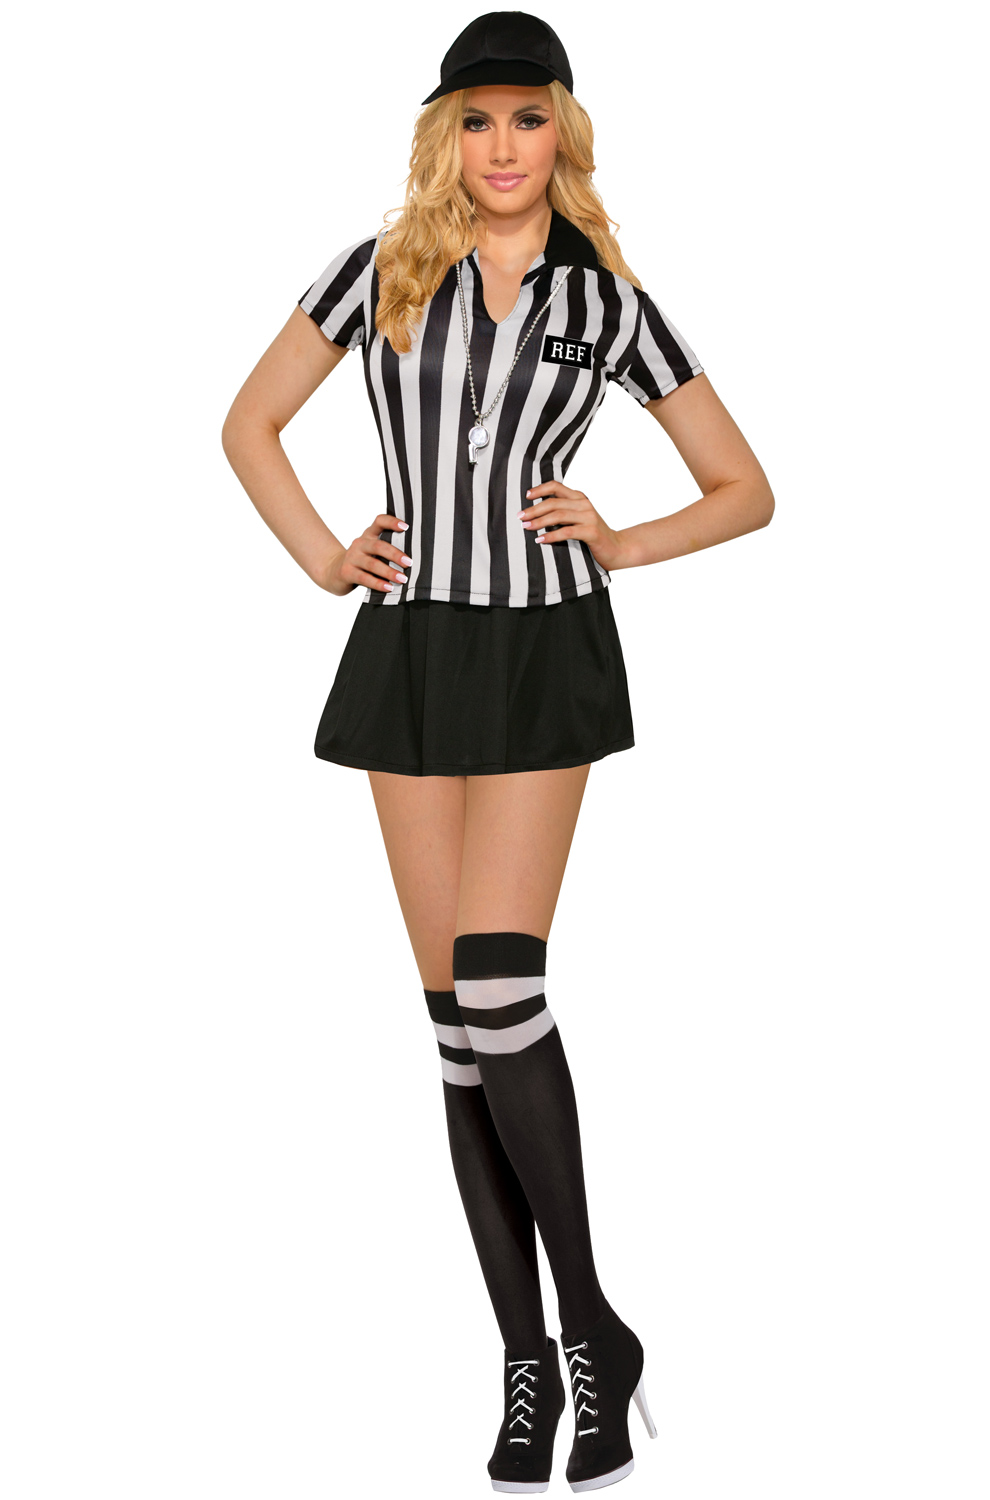 Sexy Referee Dress Adult Costume  sc 1 st  Pure Costumes & Referee Costumes u0026 Uniforms - PureCostumes.com